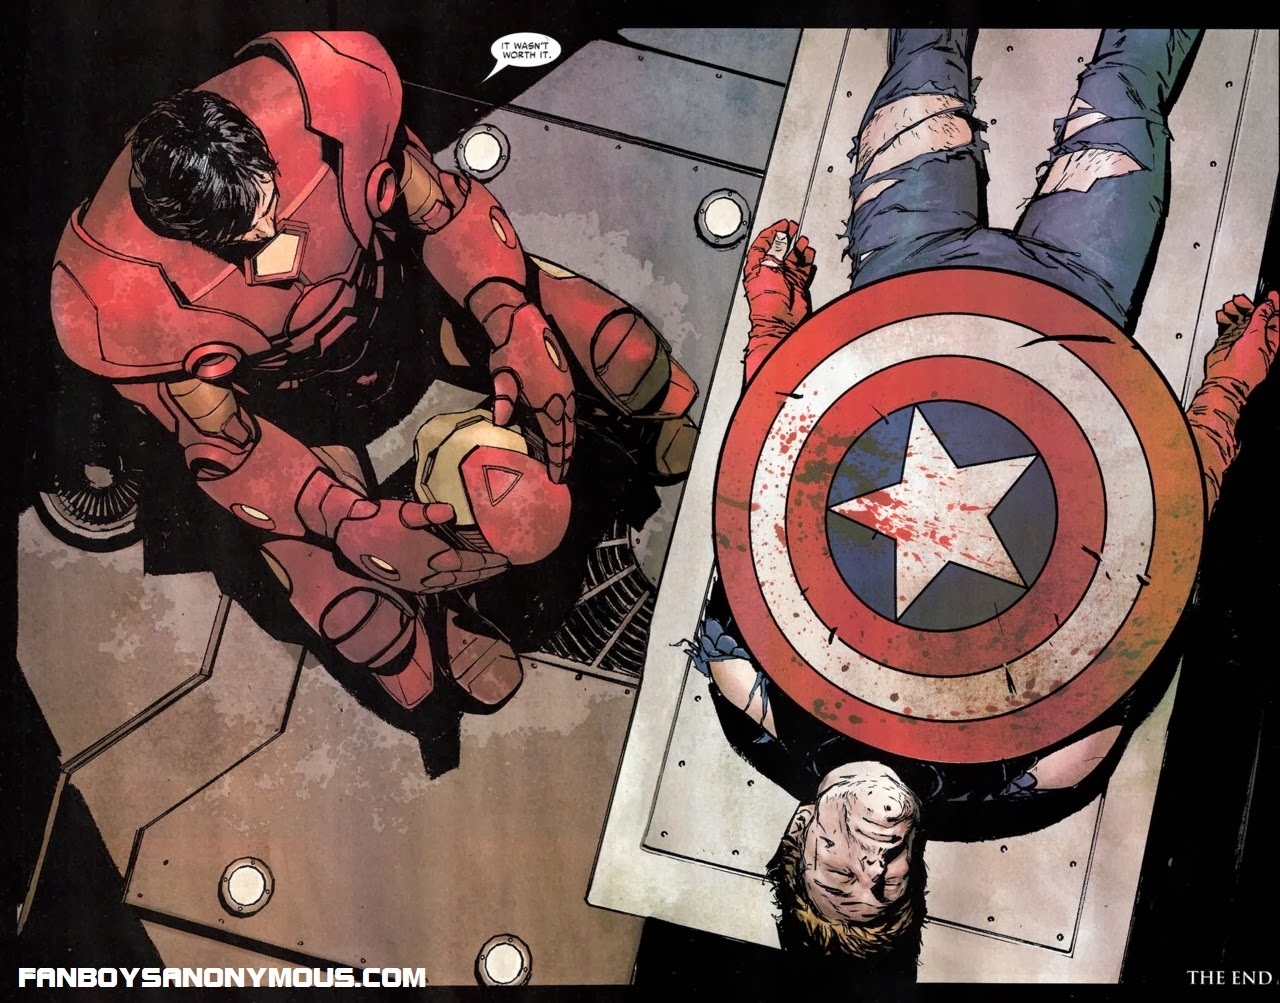 The death of Captain America after Civil War